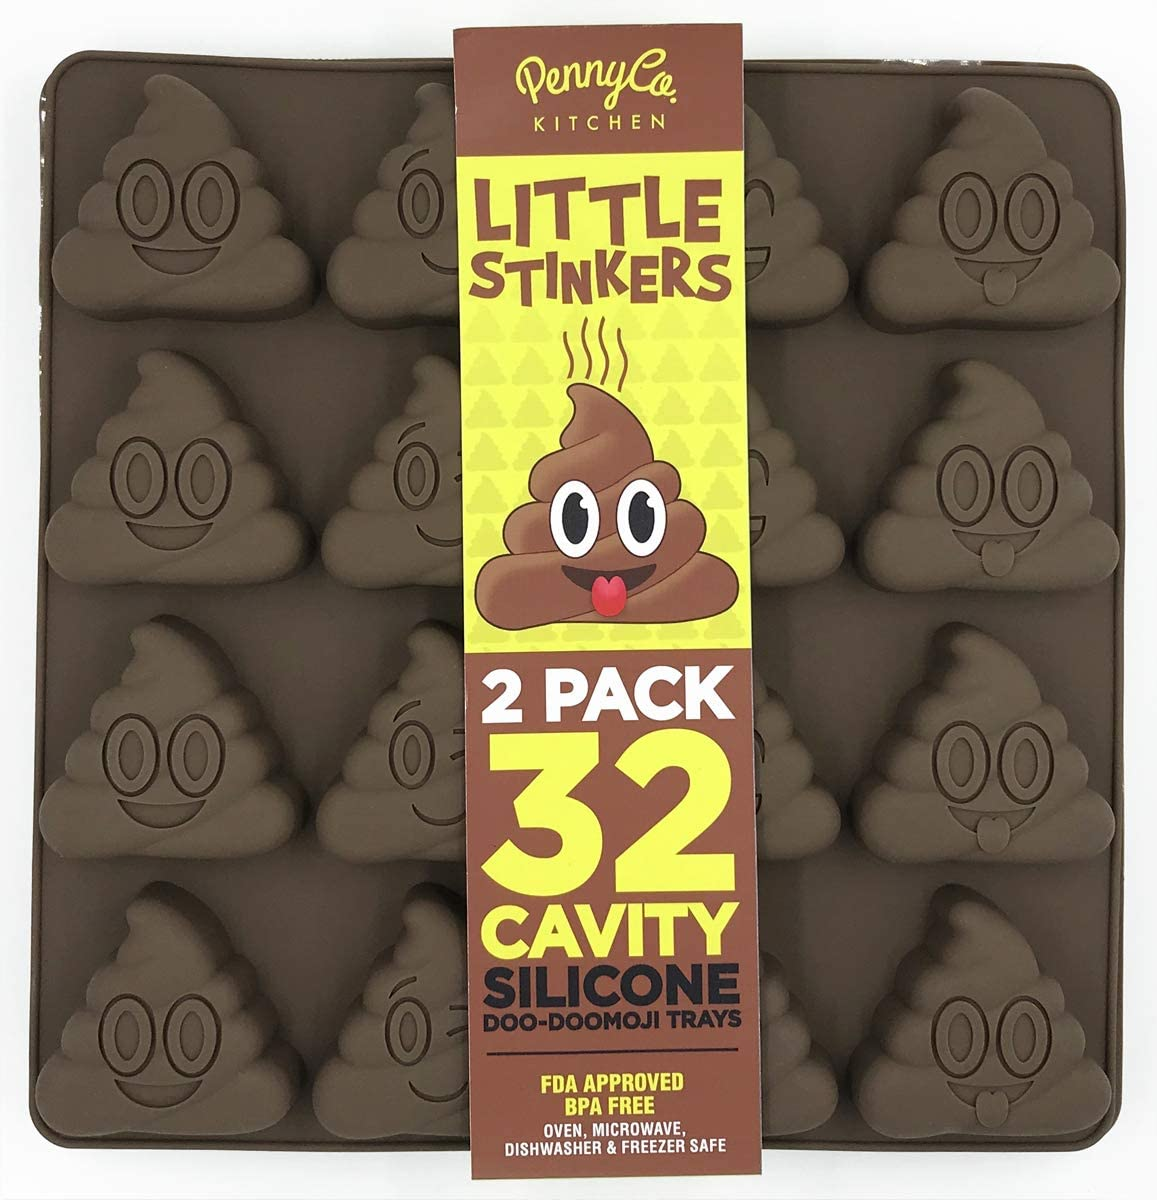 Poo Emoji Silicone Molds 32 Cavity 2 Pack Set by PennyCo Kitchen